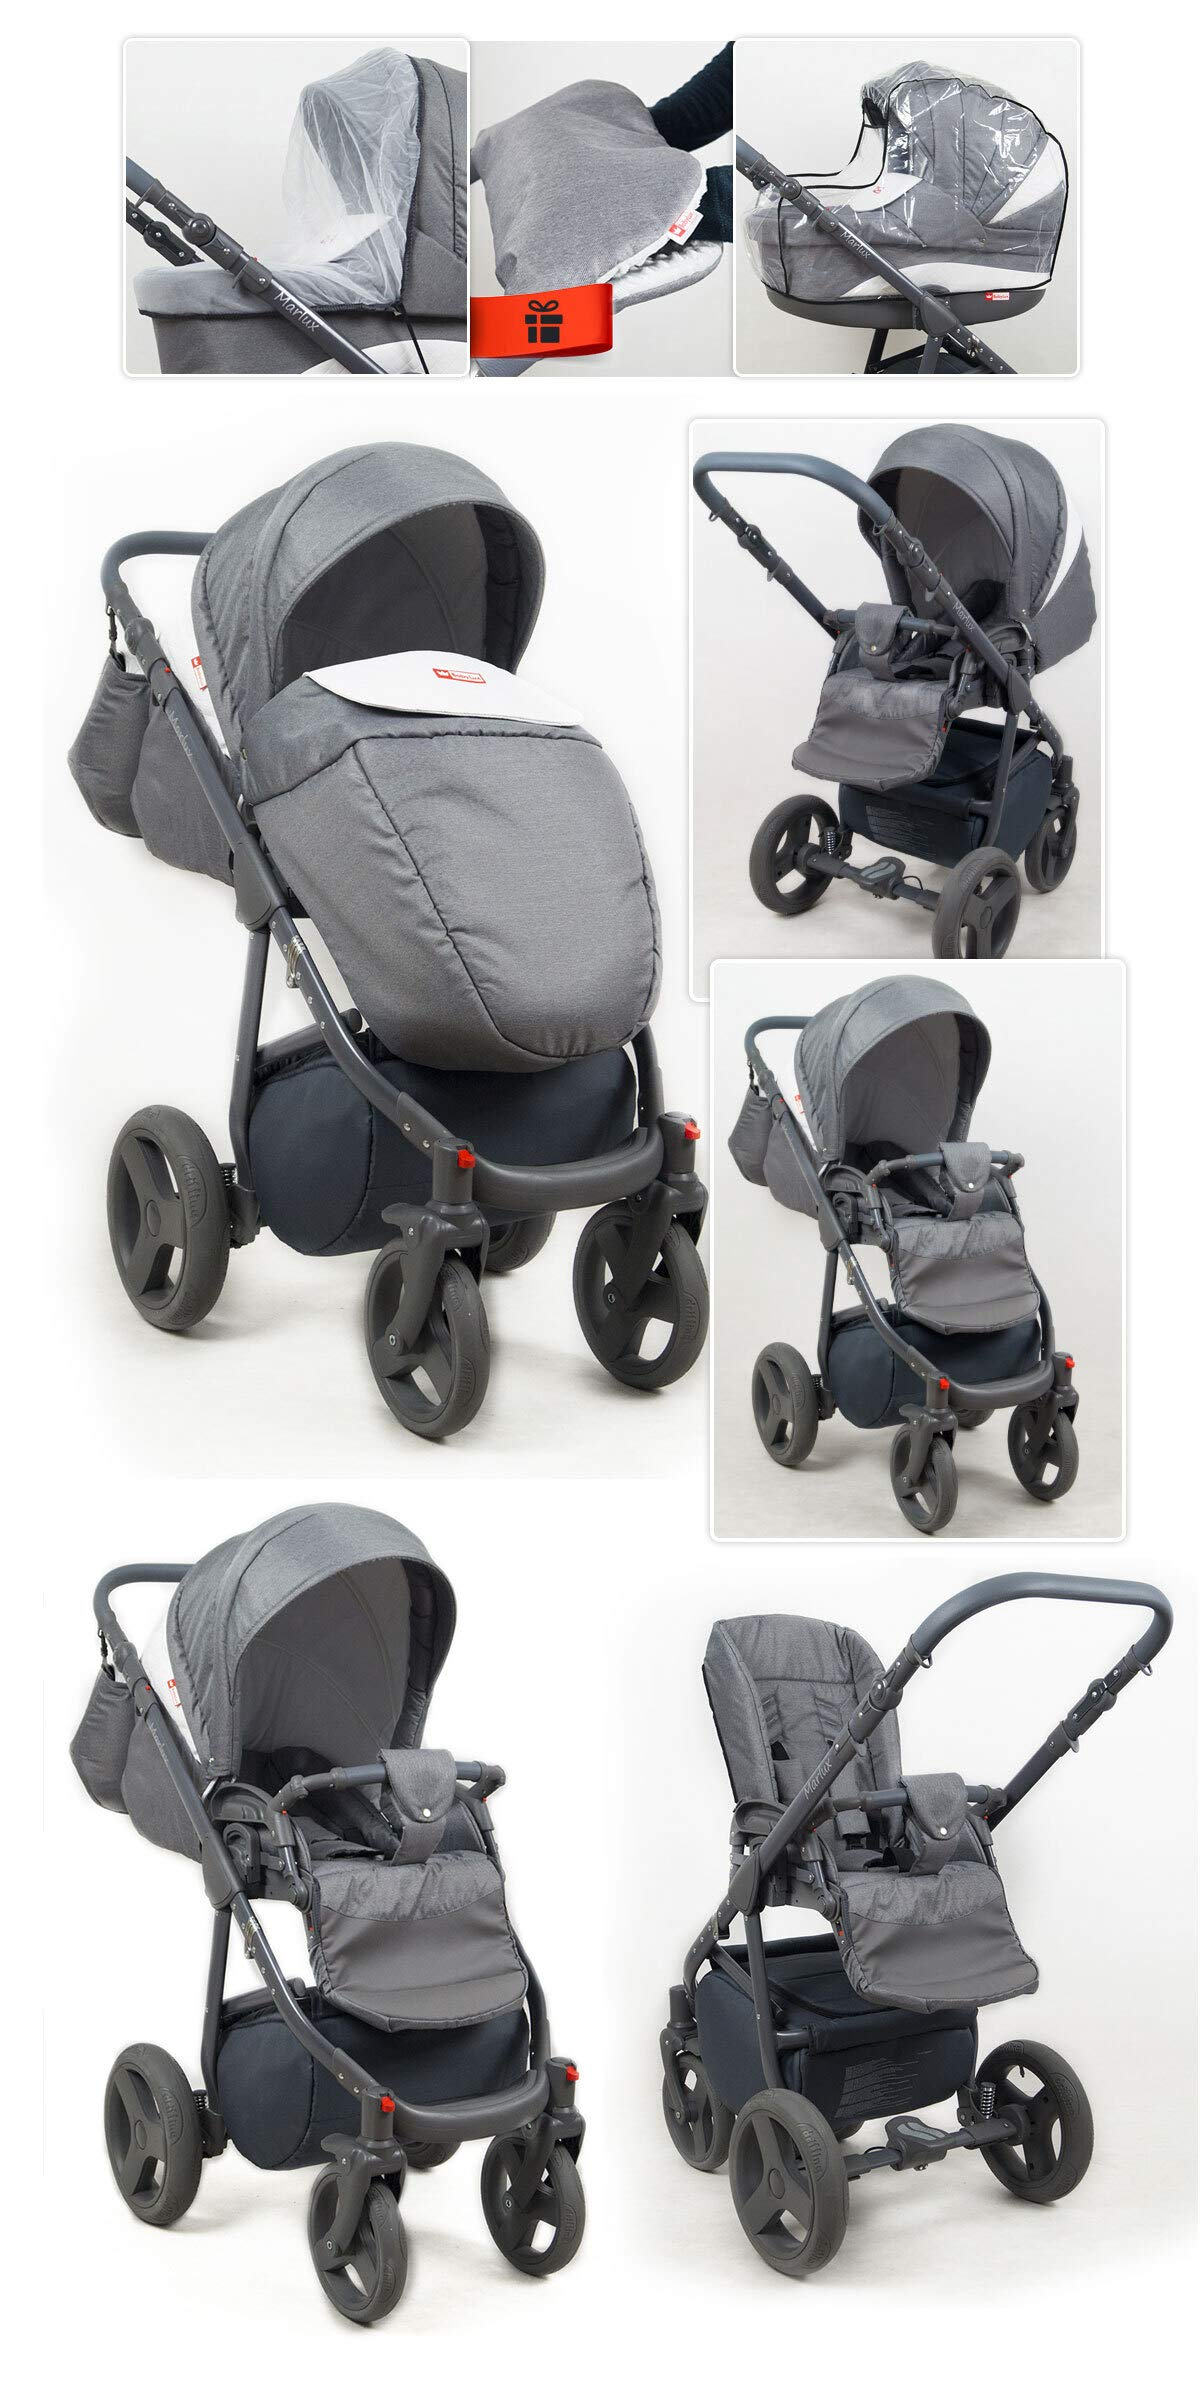 Travel System Stroller Pram Pushchair 2in1 3in1 Set Isofix Marley by SaintBaby Plum 2in1 Without Baby seat SaintBaby 3in1 or 2in1 Selectable. At 3in1 you will also receive the car seat (baby seat). Of course you get the baby tub (classic pram) as well as the buggy attachment (sports seat) no matter if 2in1 or 3in1. The car naturally complies with the EU safety standard EN1888. During production and before shipment, each wagon is carefully inspected so that you can be sure you have one of the best wagons. Saintbaby stands for all-in-one carefree packages, so you will also receive a diaper bag in the same colour as the car as well as rain and insect protection free of charge. With all the colours of this pram you will find the pram of your dreams. 5